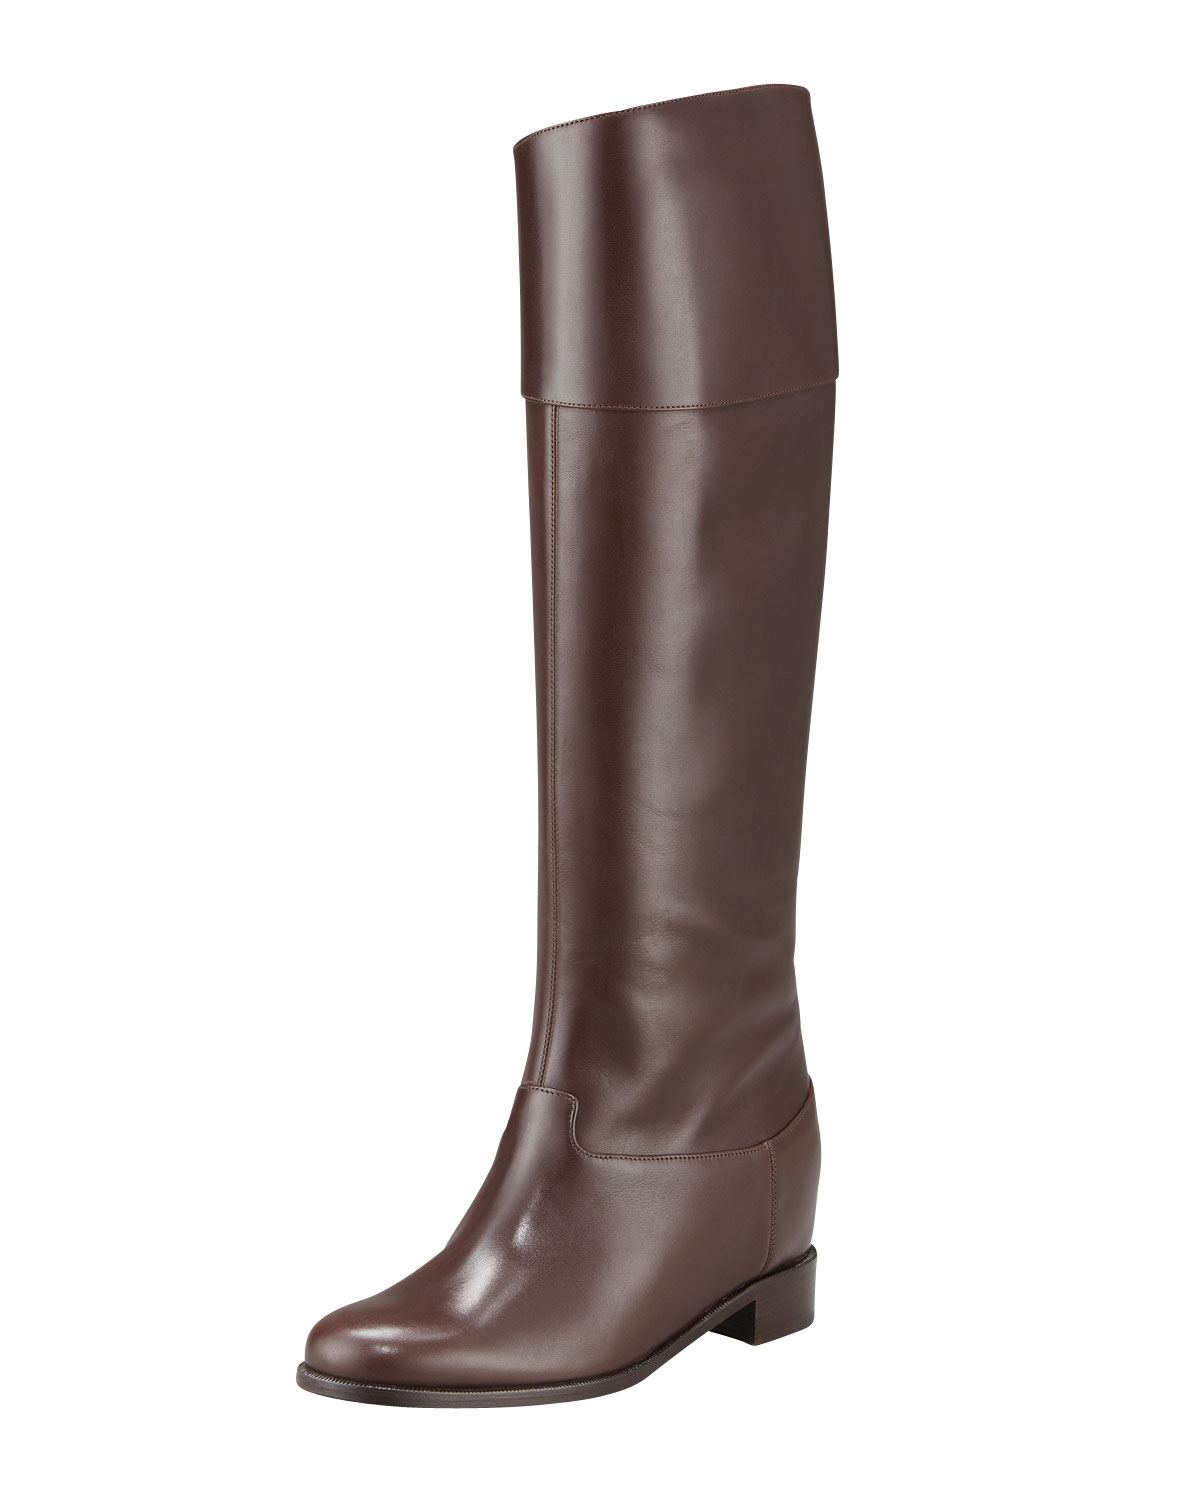 4e1ea73ead3 ... red sole hunter green suede and tan leather boots 4e3f4 00fe8  greece lyst  christian louboutin hidden wedge riding boot in black 7ddfa 883ad